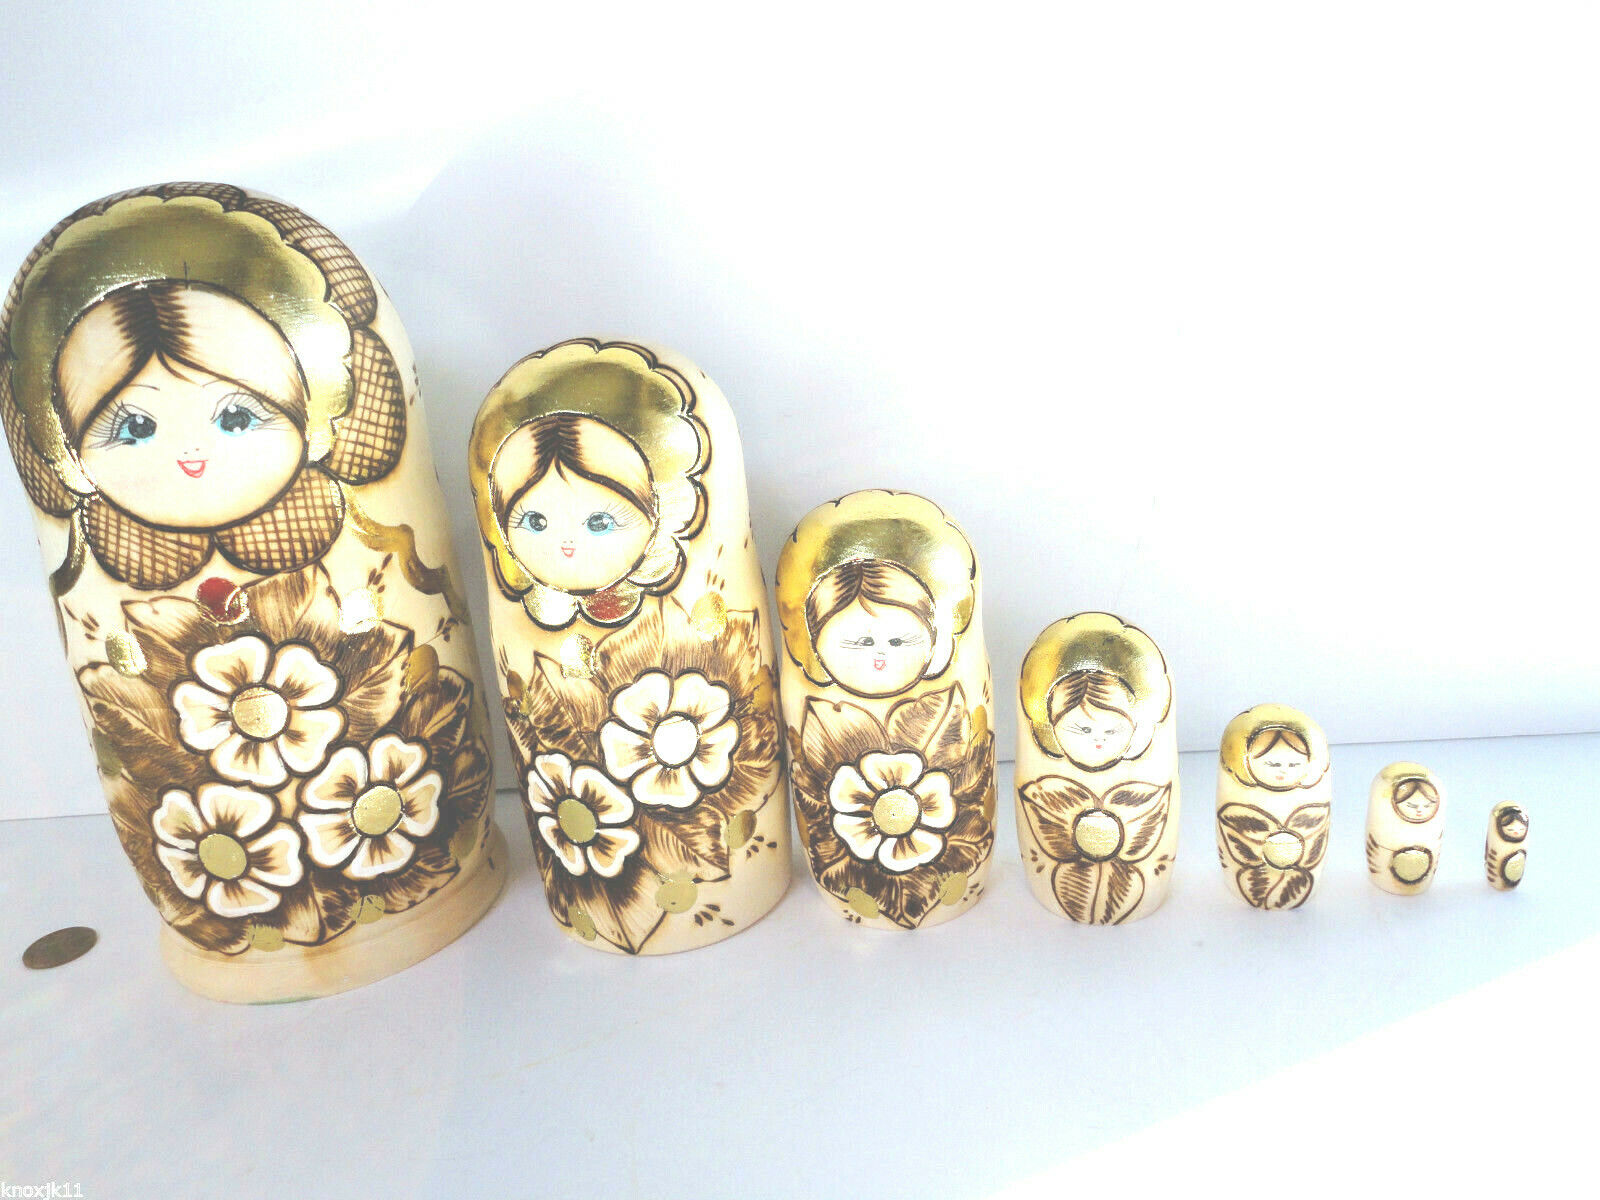 Neu Set (7) Russische Made Holz Matrjoschkapuppen Holz Stapel Matryoshka